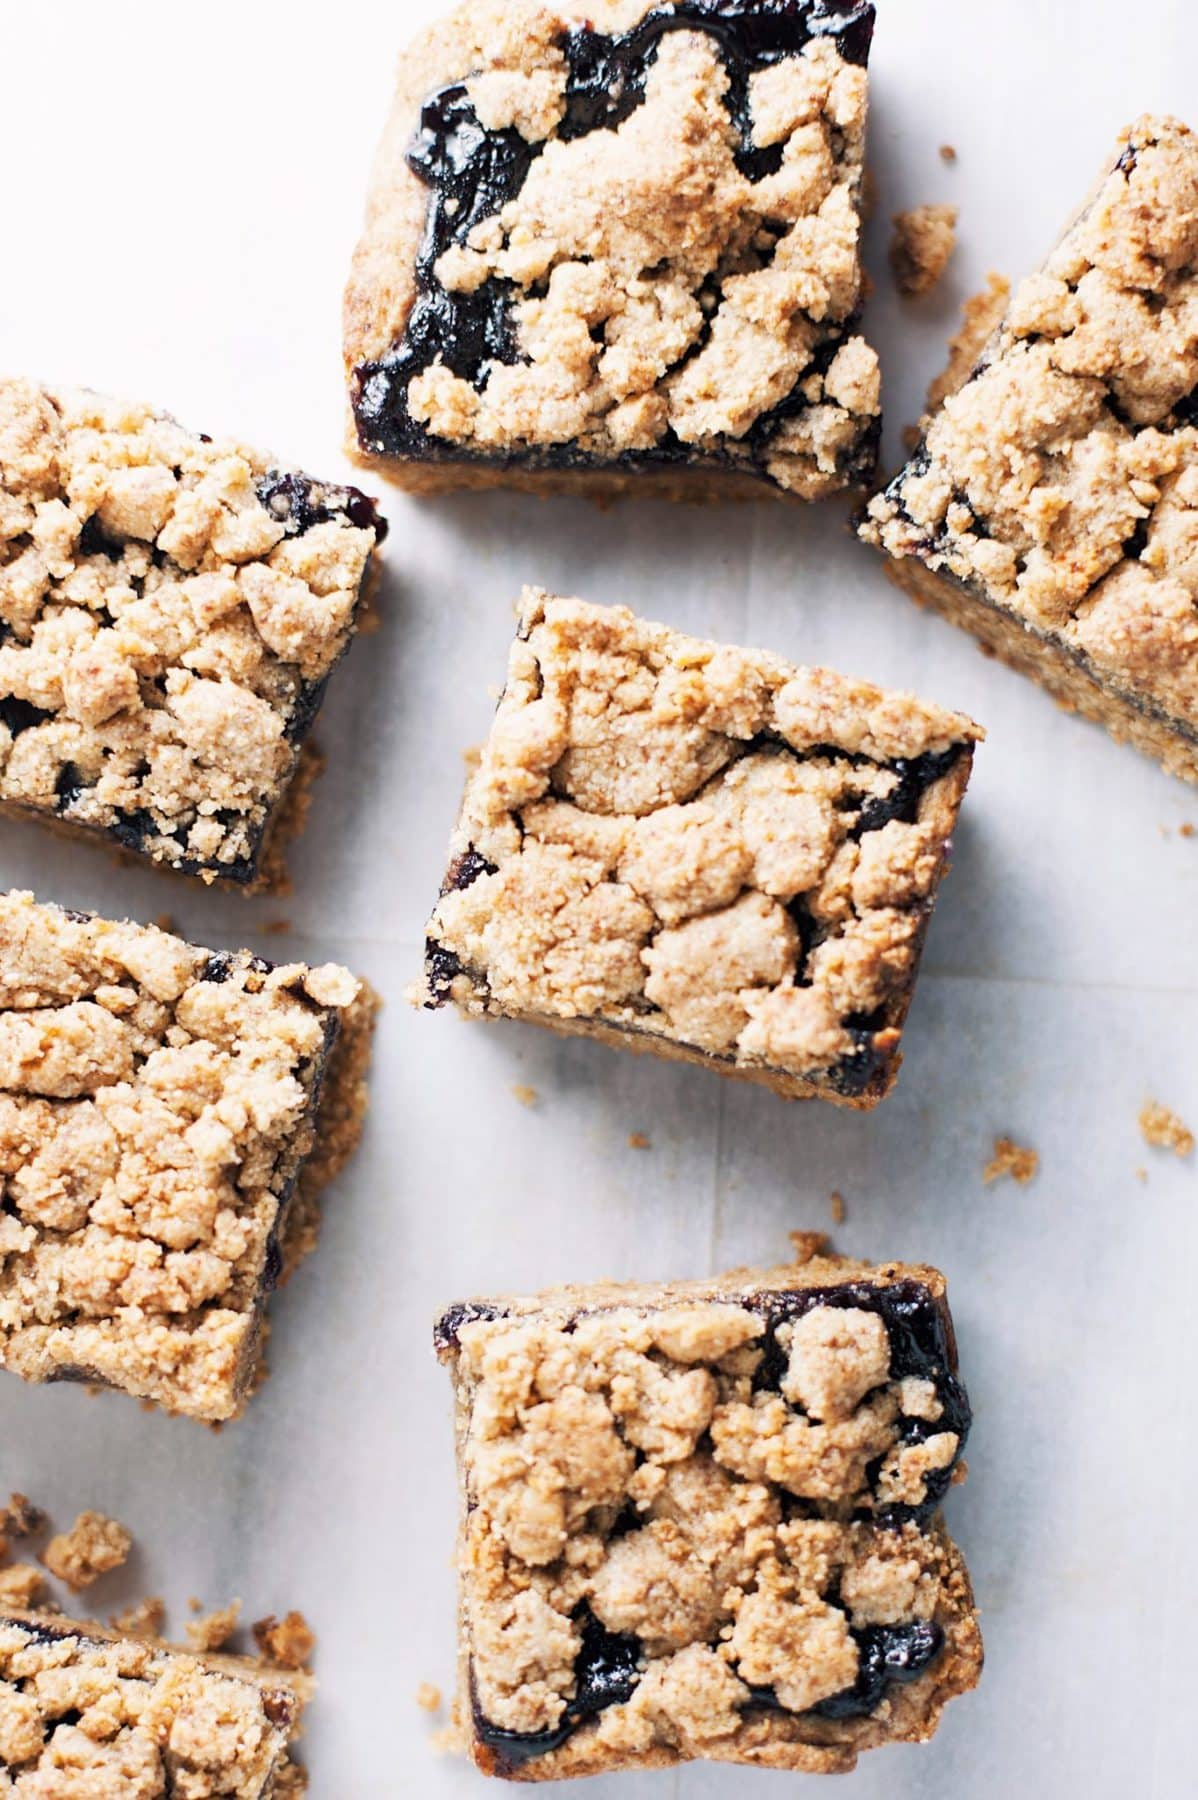 blueberry crumble bar on parchment papaer